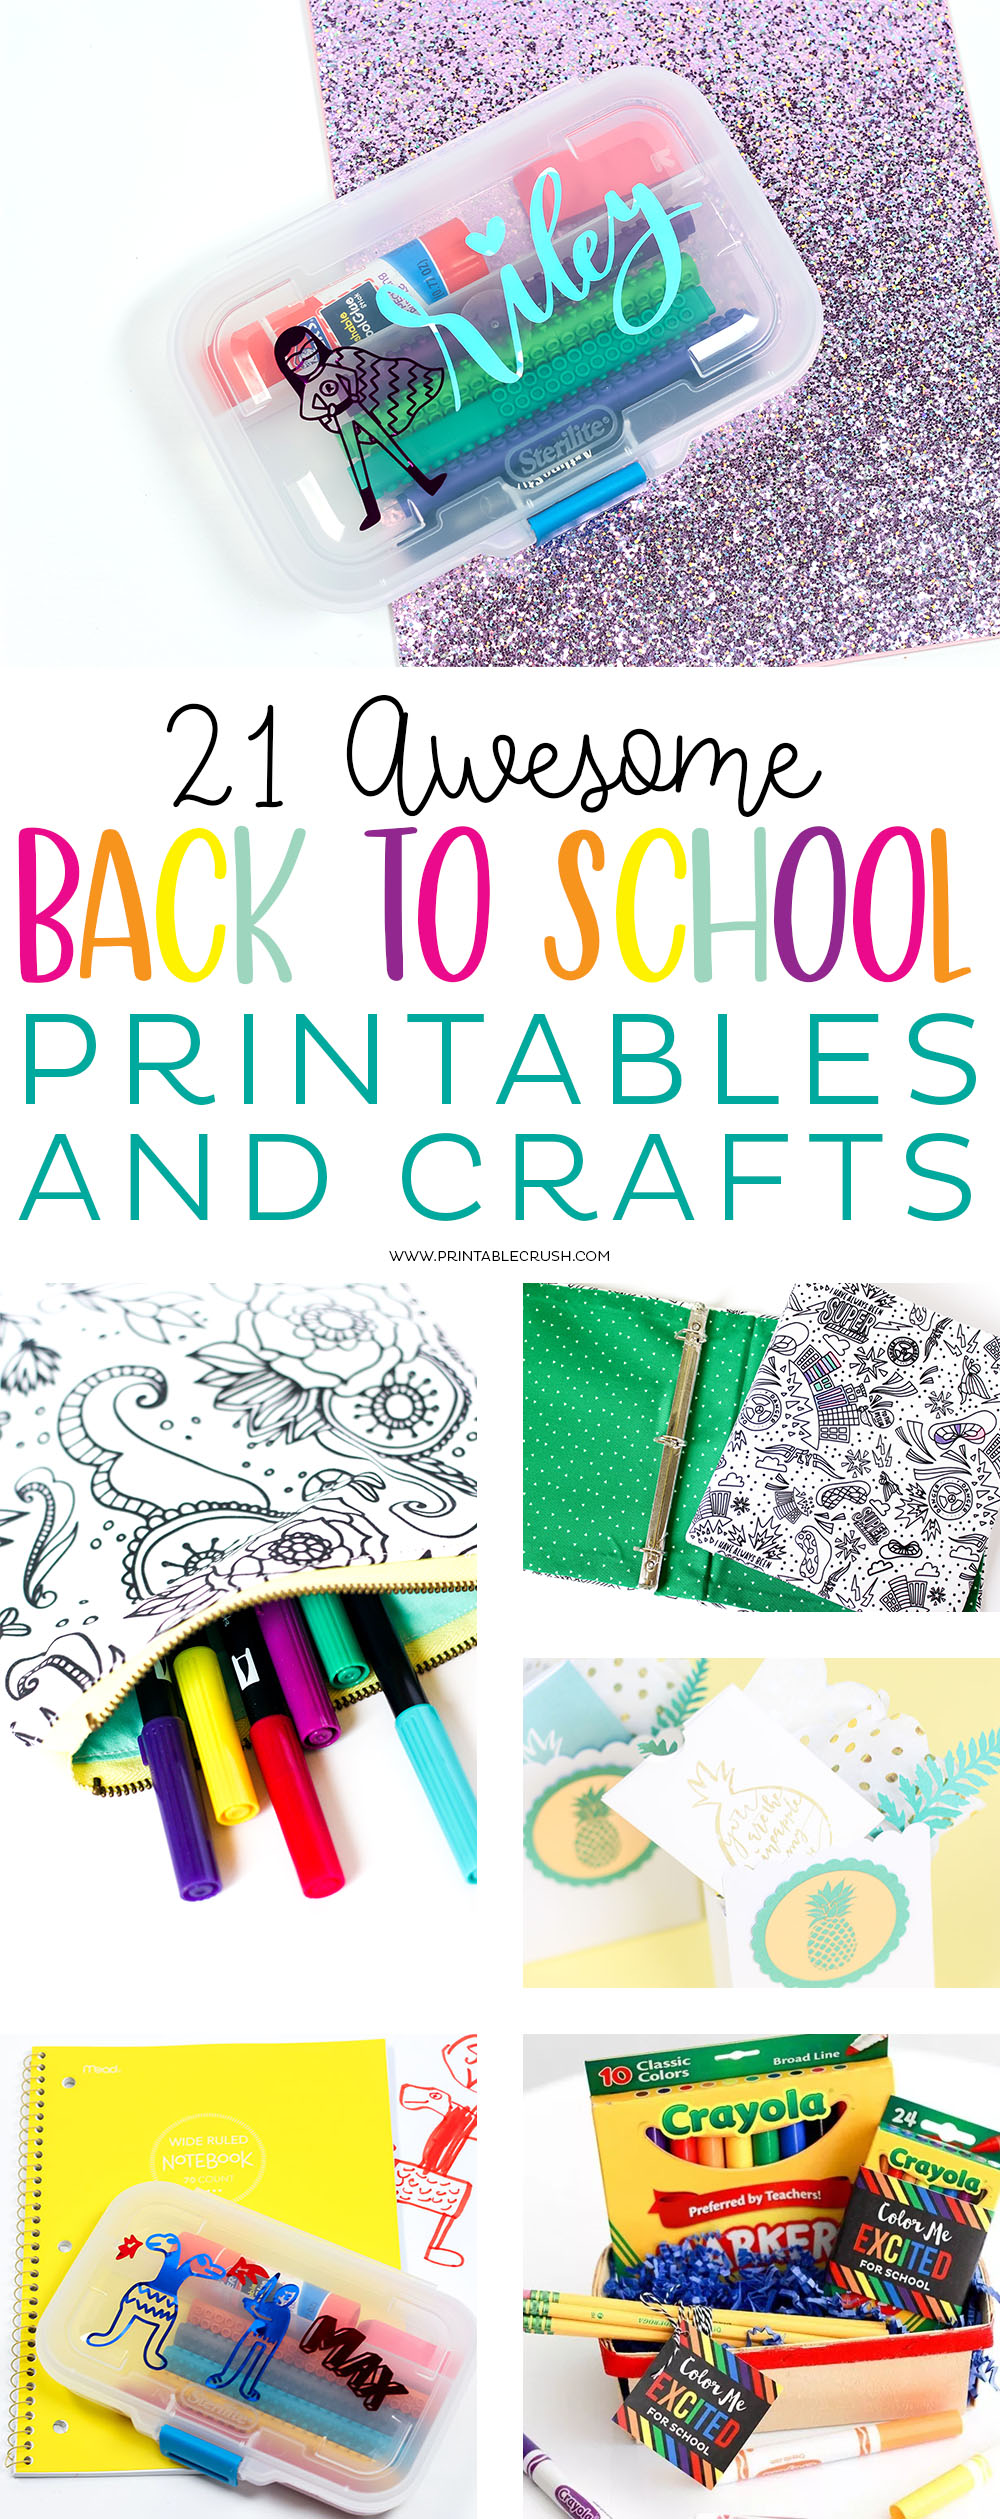 Your kids will love creating with these 19 AMAZING Back to School Printables and Crafts. You'll find teacher gifts, school supply activities, all about me printables and more!